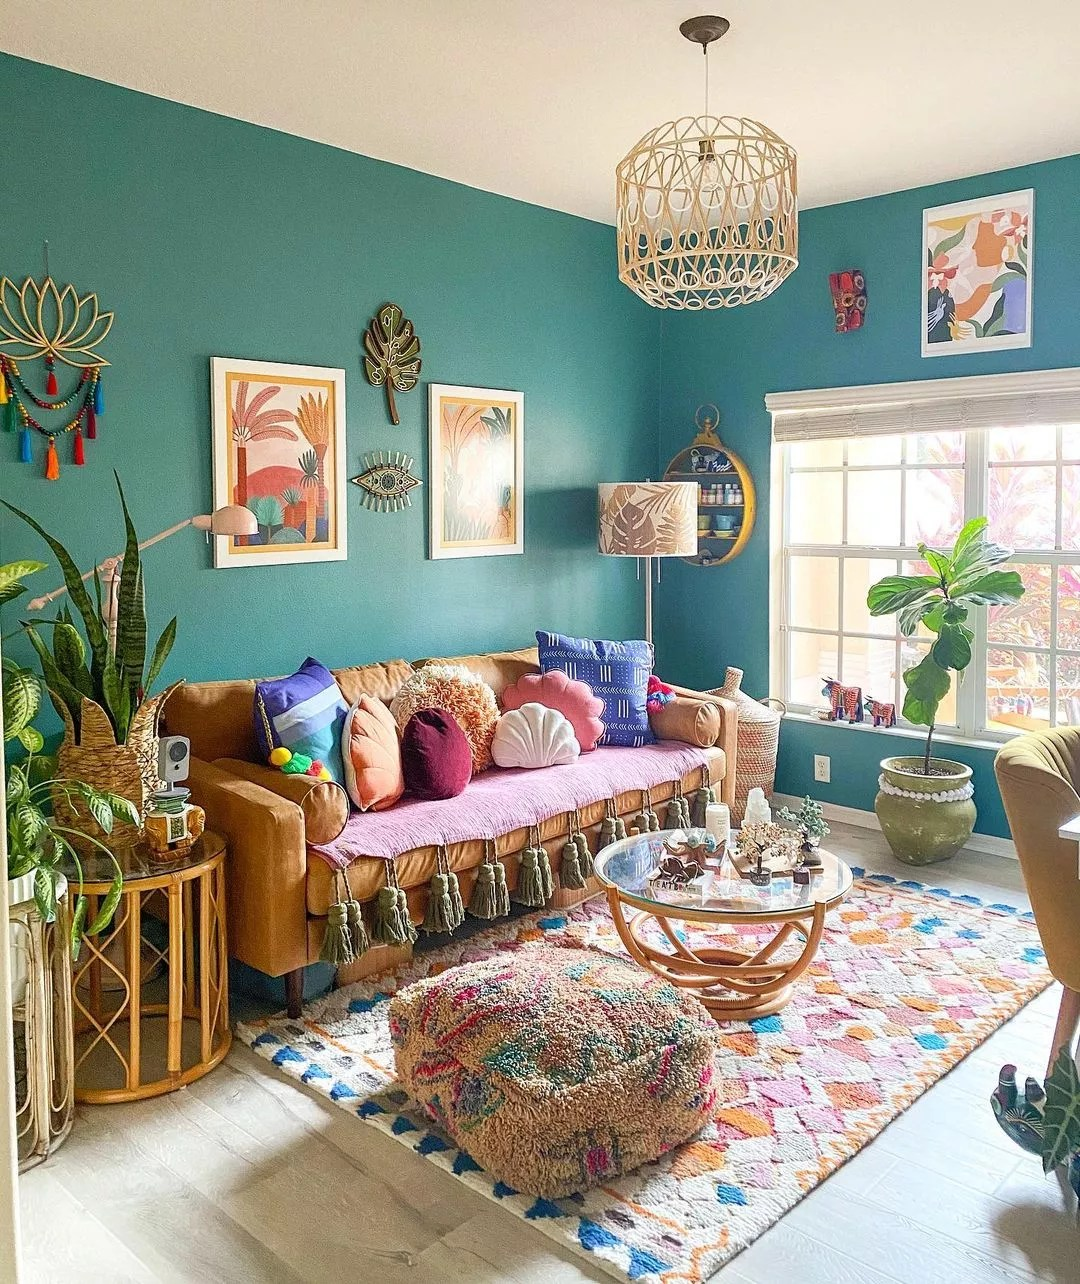 Living room with teal walls and brightly colored pillows, rug, wall art. Photo by Instagram user @mango_manor.